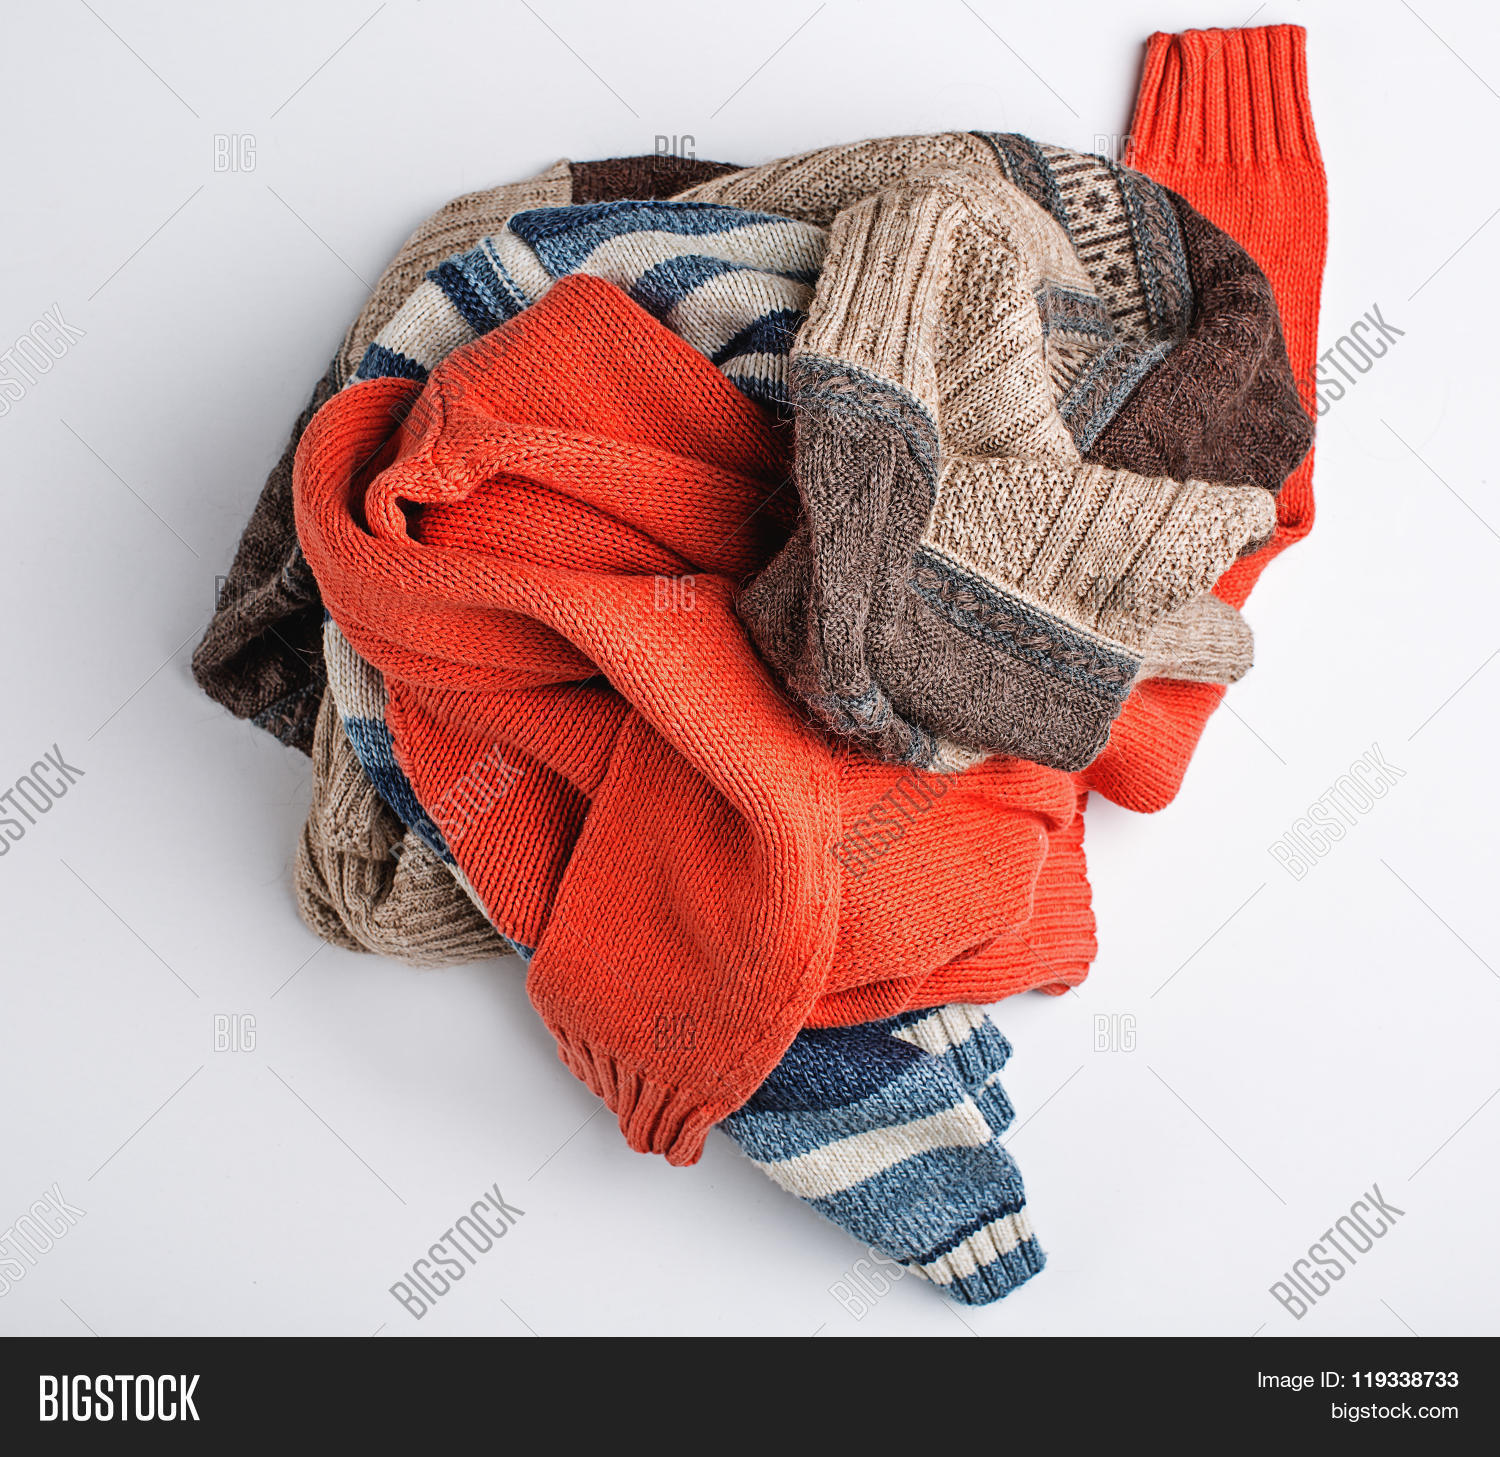 cef4a9414 Crumpled Clothes Image & Photo (Free Trial) | Bigstock